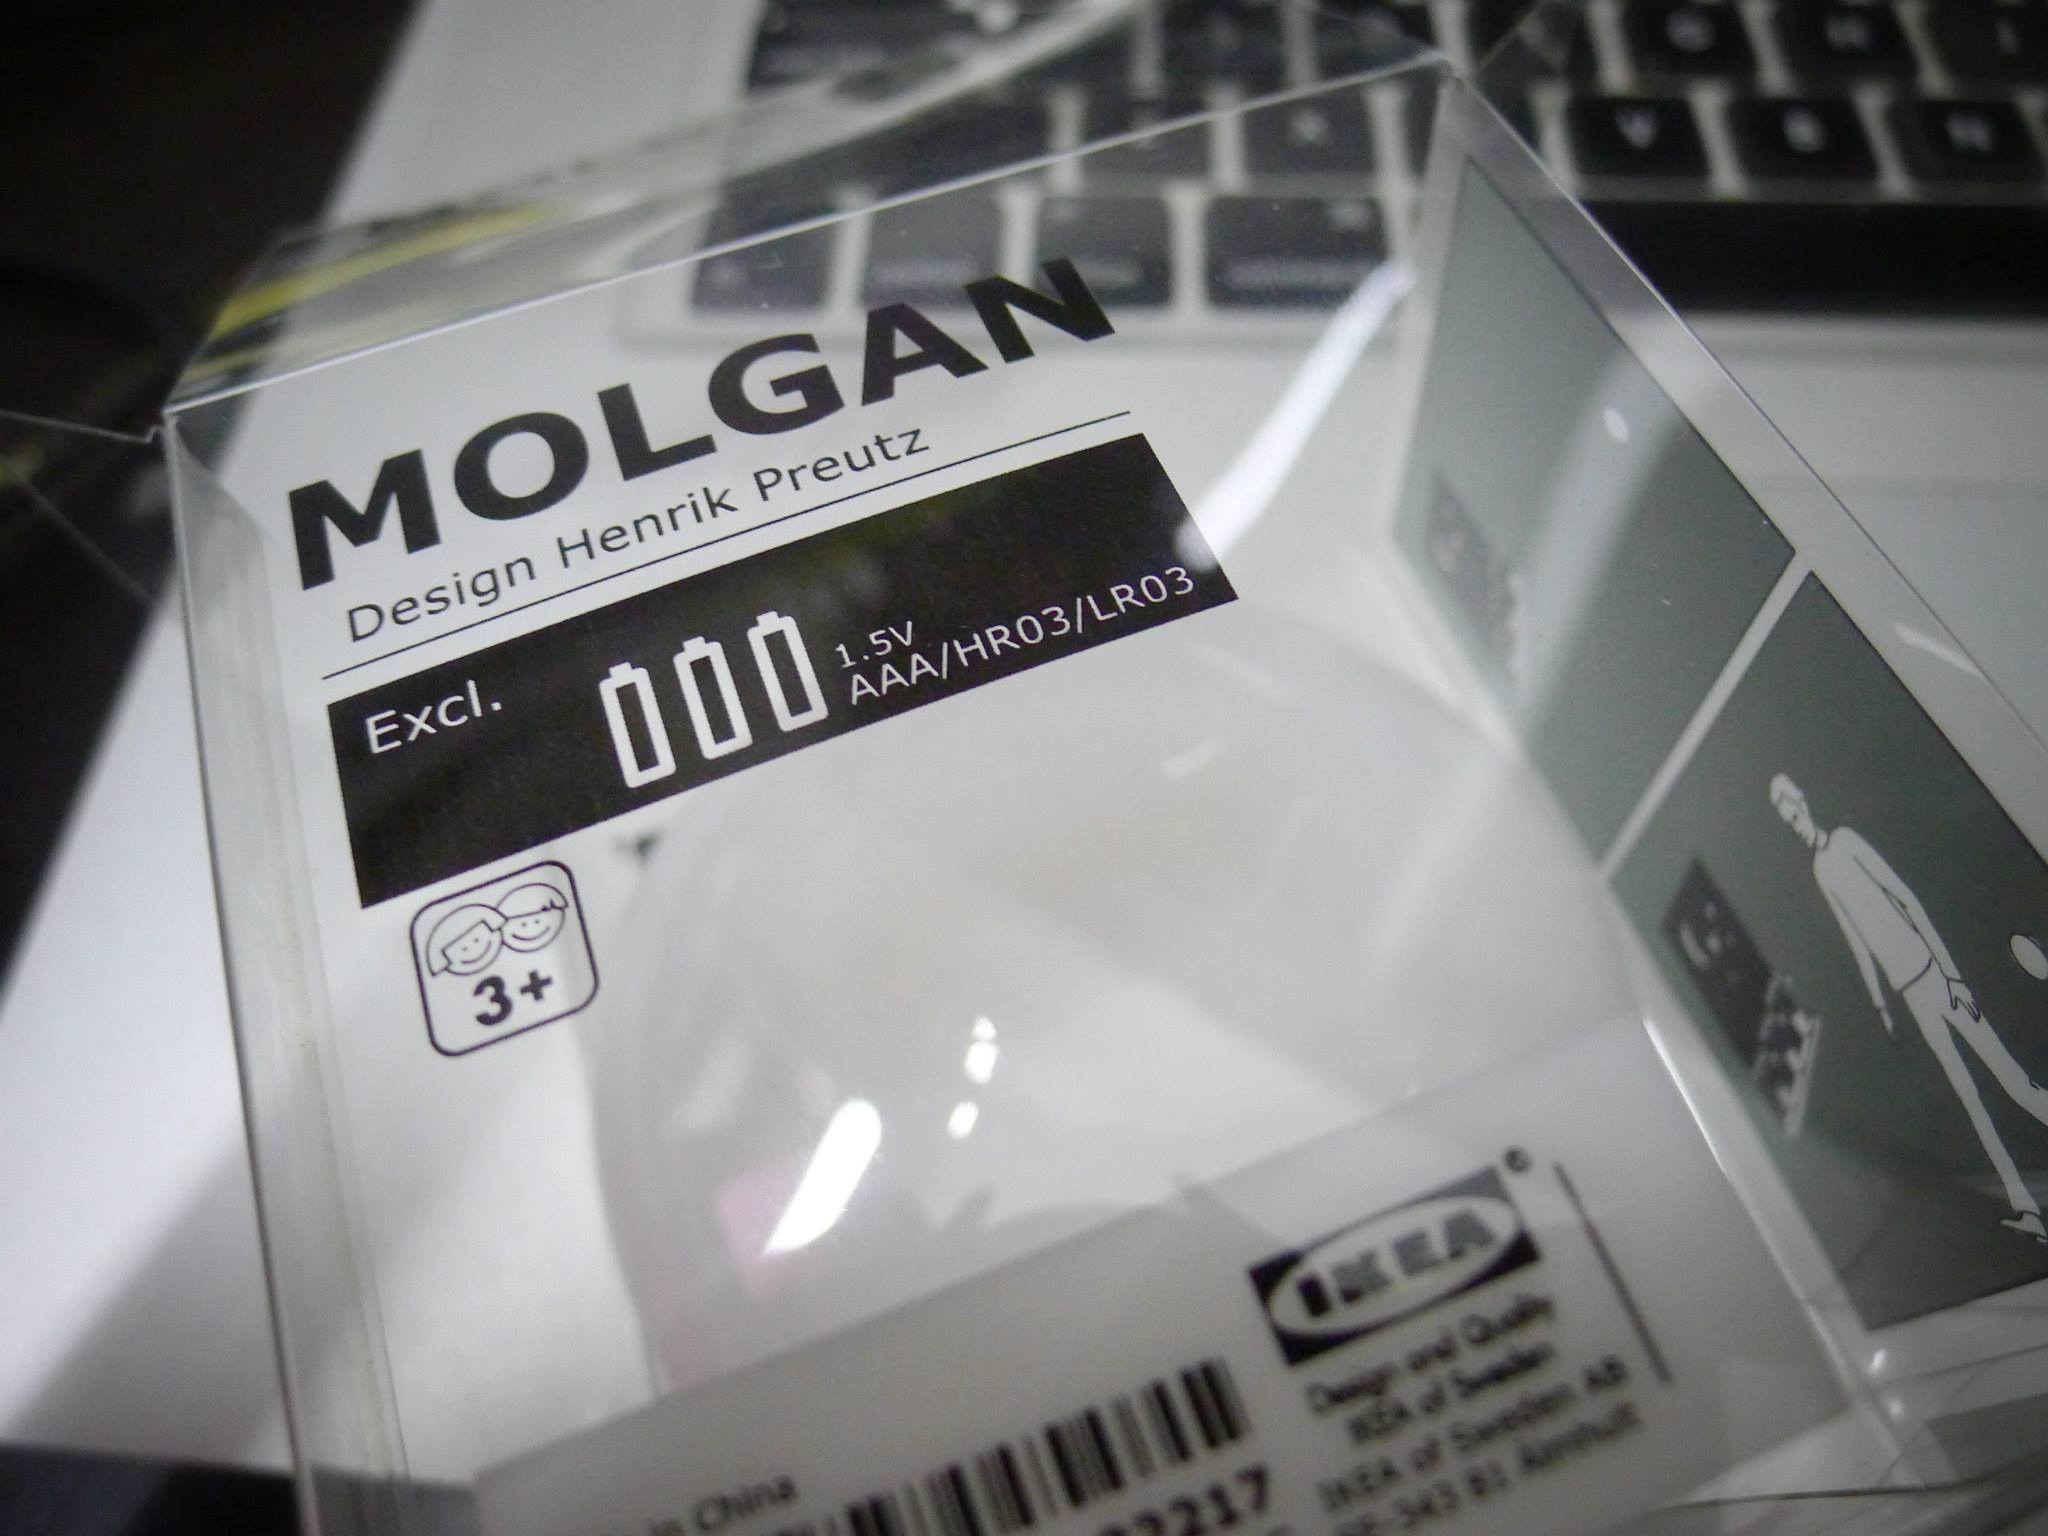 Esp8266 Ikea Molgan Light Hack Hardware Terenceang Circuit Breaker Labels Ebay My Original Plan Was To Use An Cheap Pir And 3d Printed Case For This Project But I Happen Have A Spare Lying Around